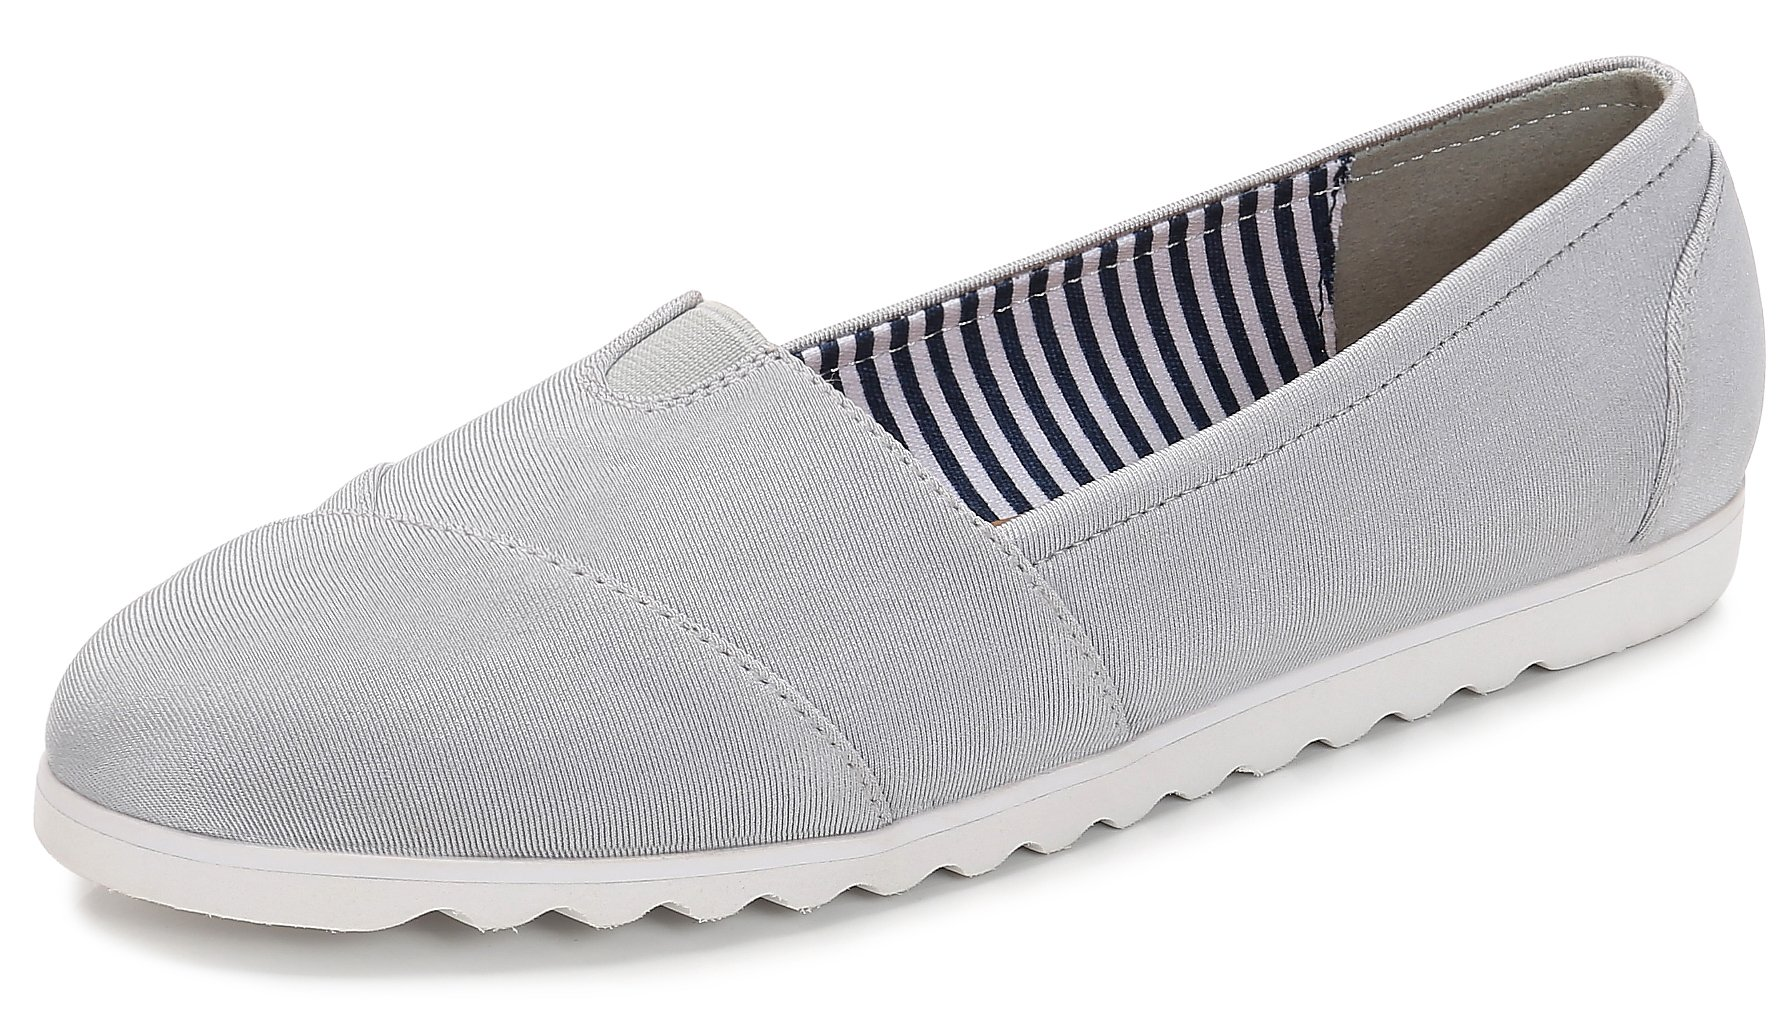 ComeShun Grey Womens Shoes Classic Slip On Comfort Casual Flats Size 7